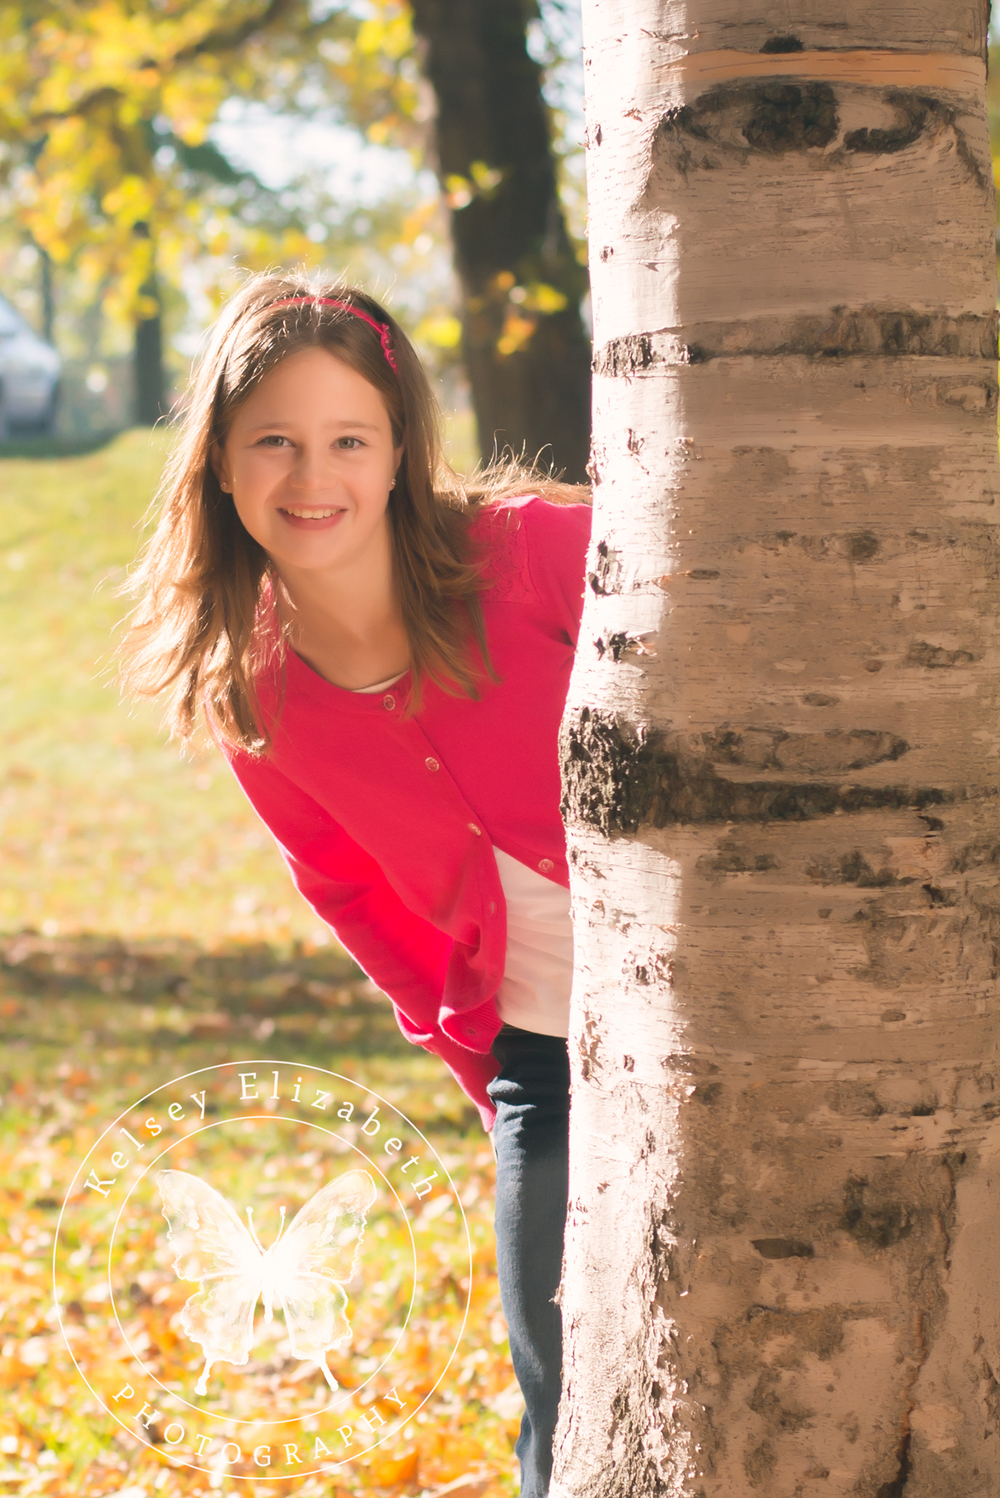 Twin Cities Hastings MN Natural Light Children's Photographer; Fall Foliage Portrait